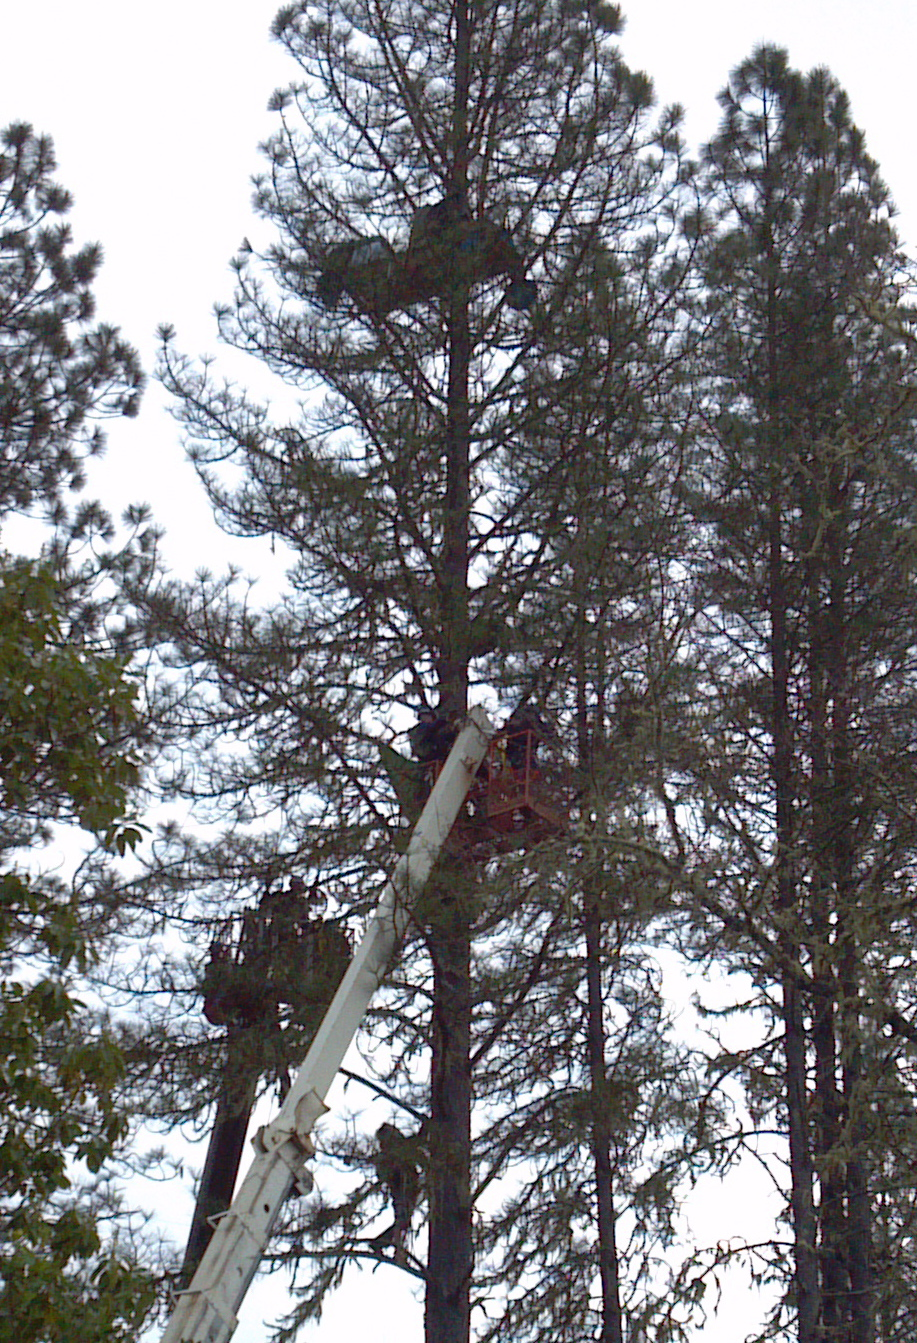 Police reportedly used a cherry picker to arrest tree sitters. (Kelly Larson)